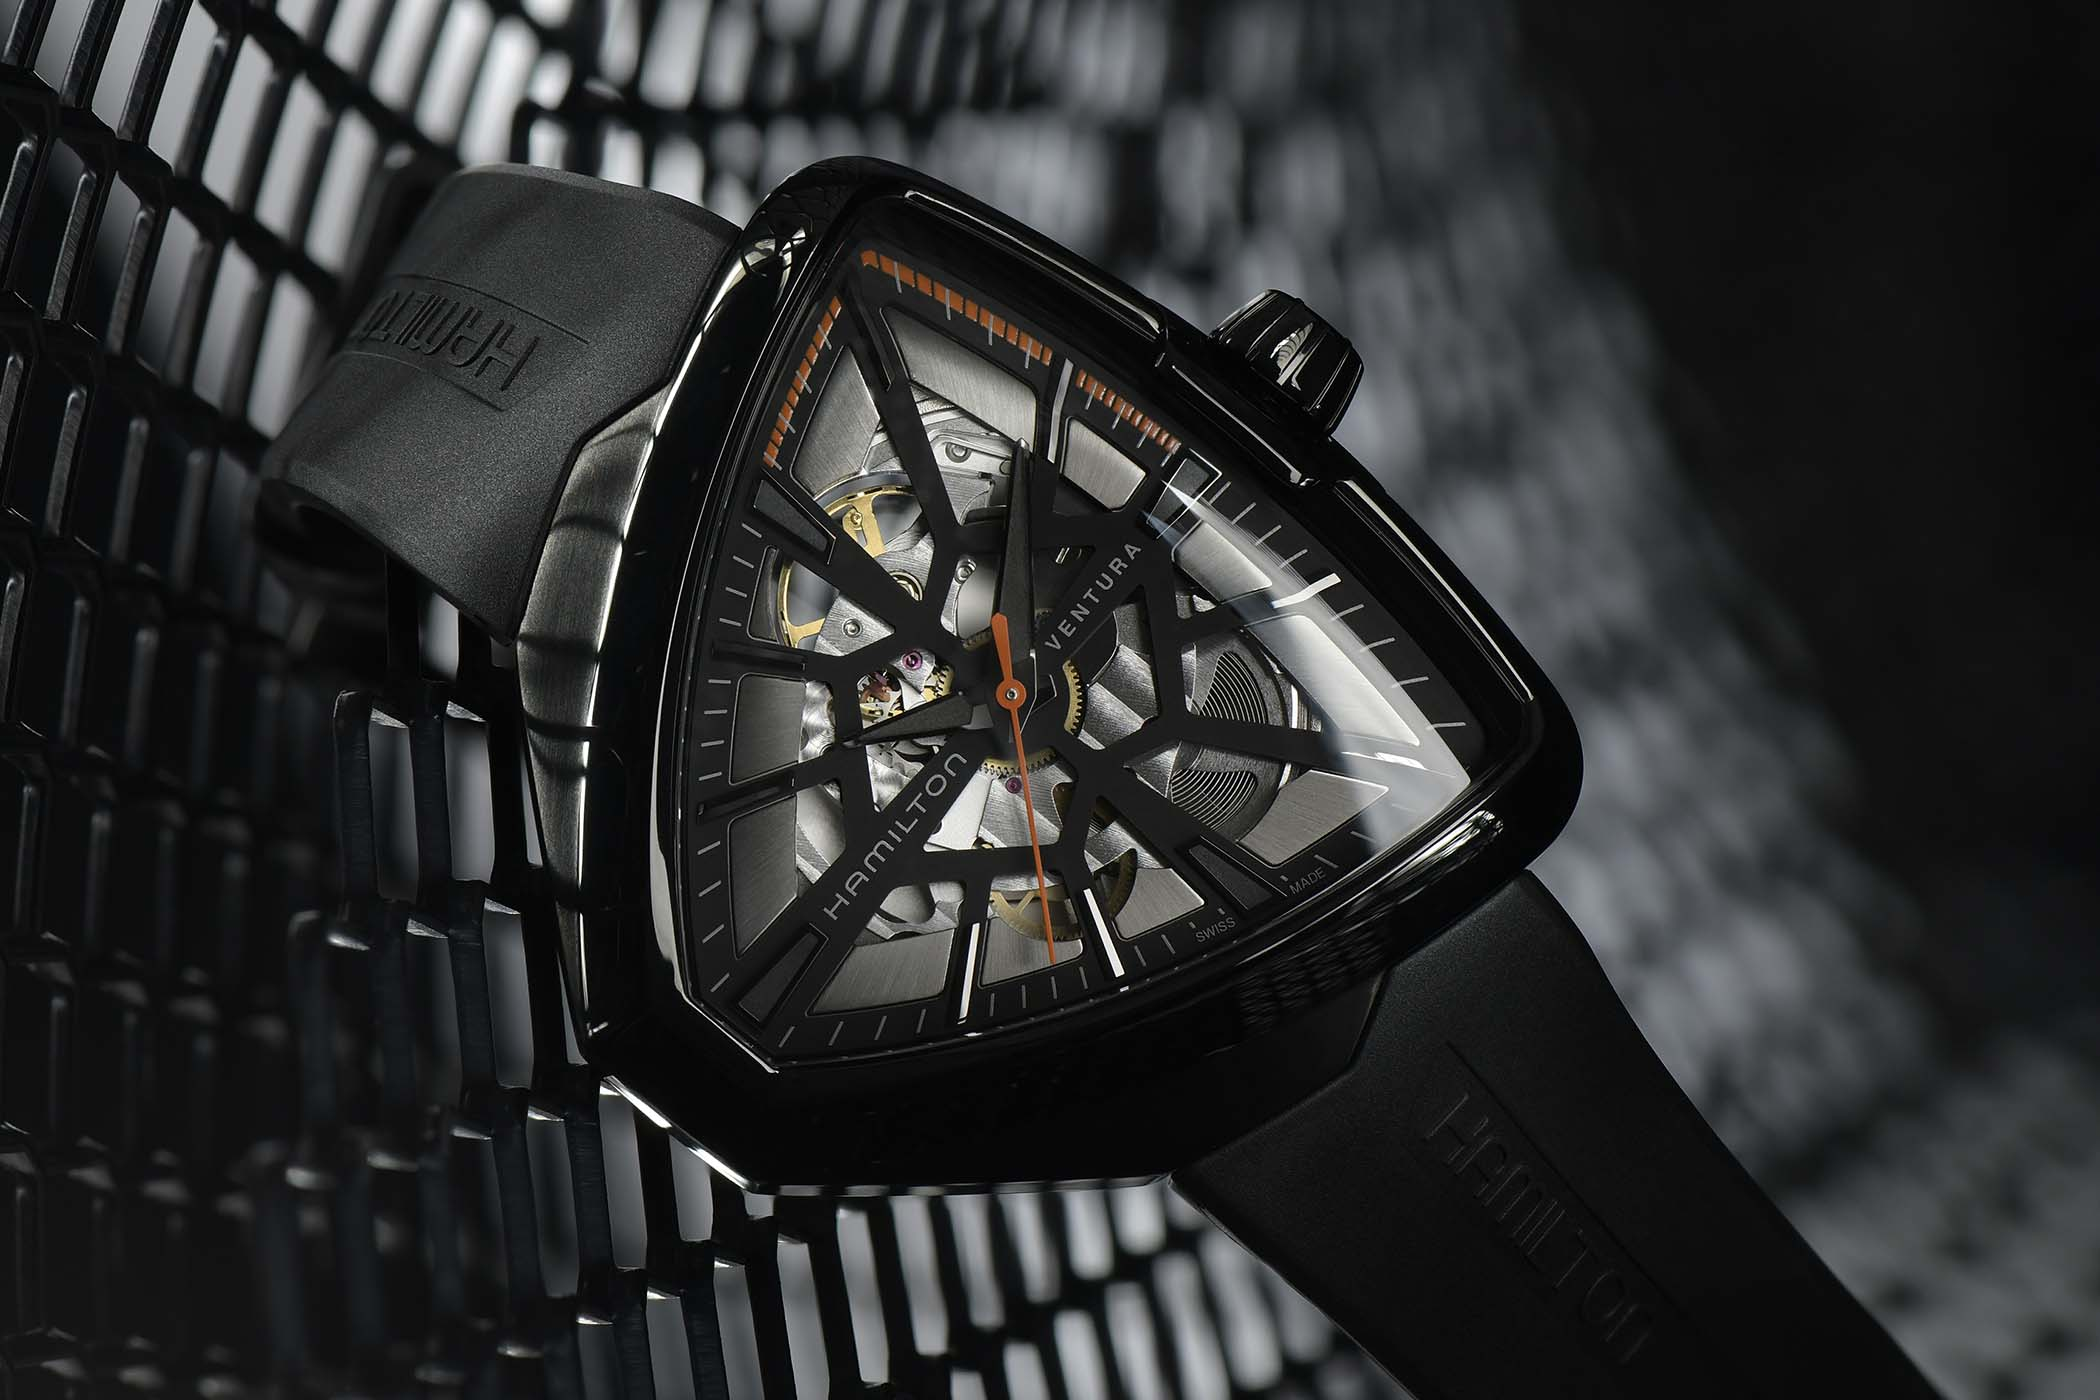 Hamilton Ventura Skeleton Limited Edition - Inspired by